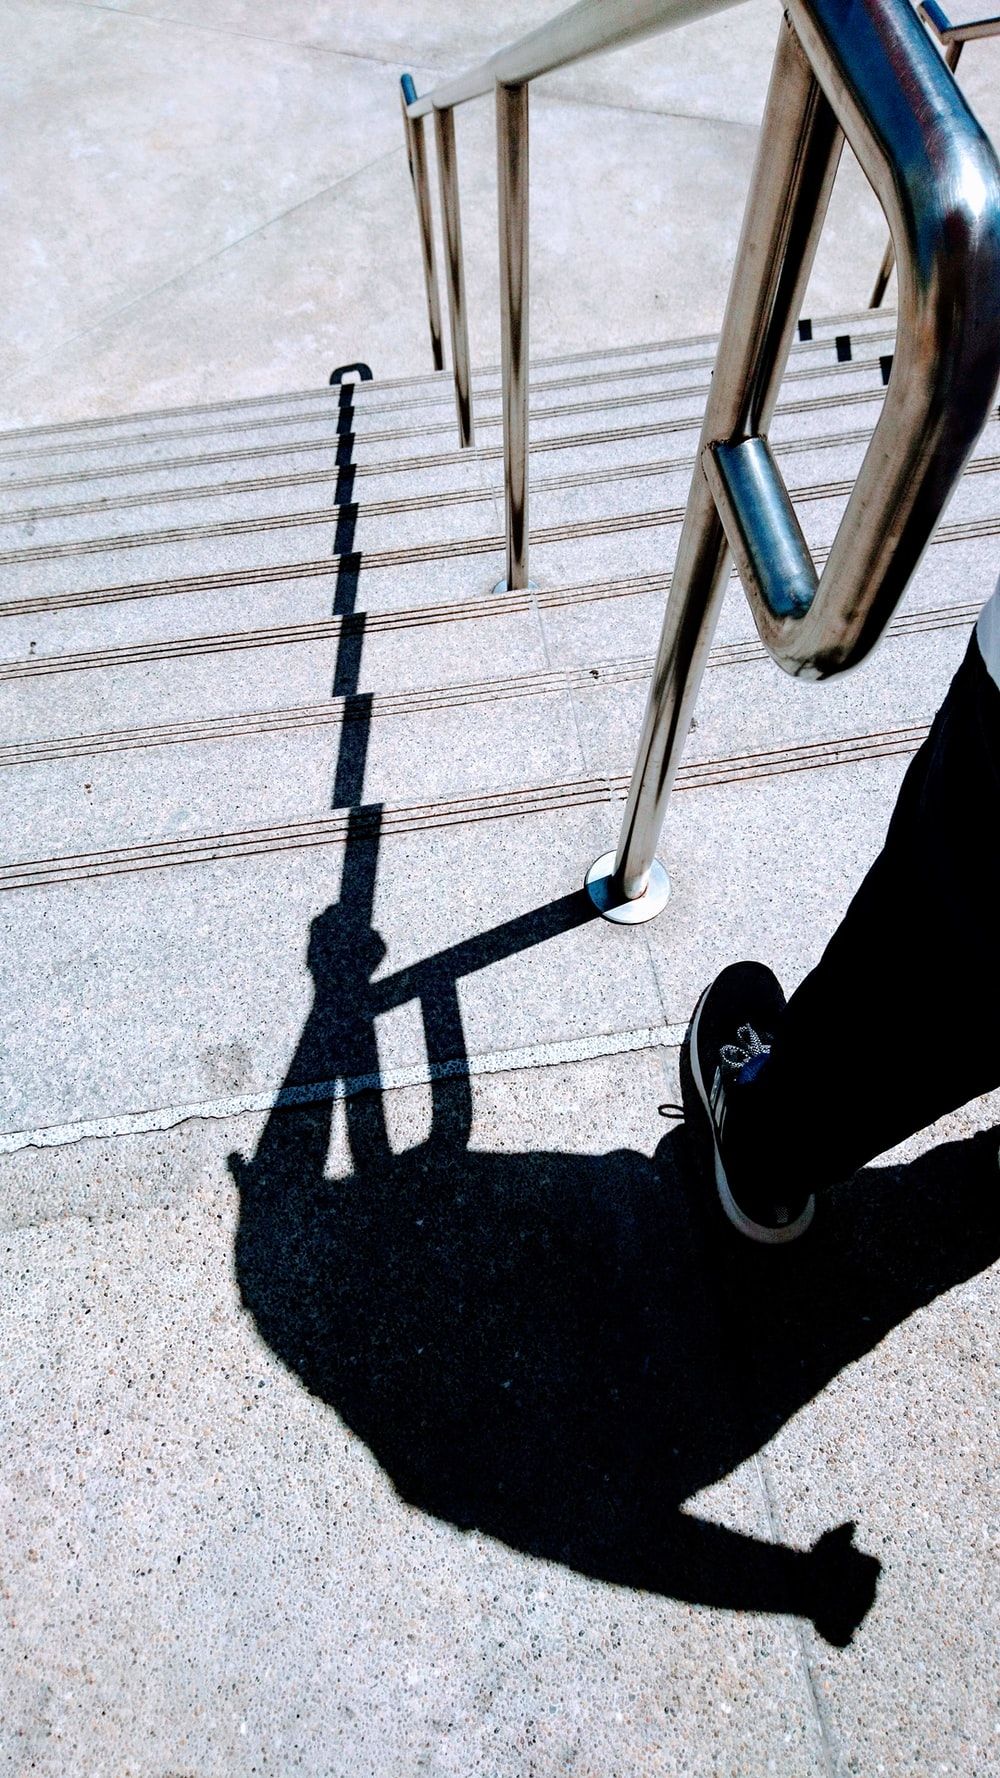 shadow of a person standing on staircase